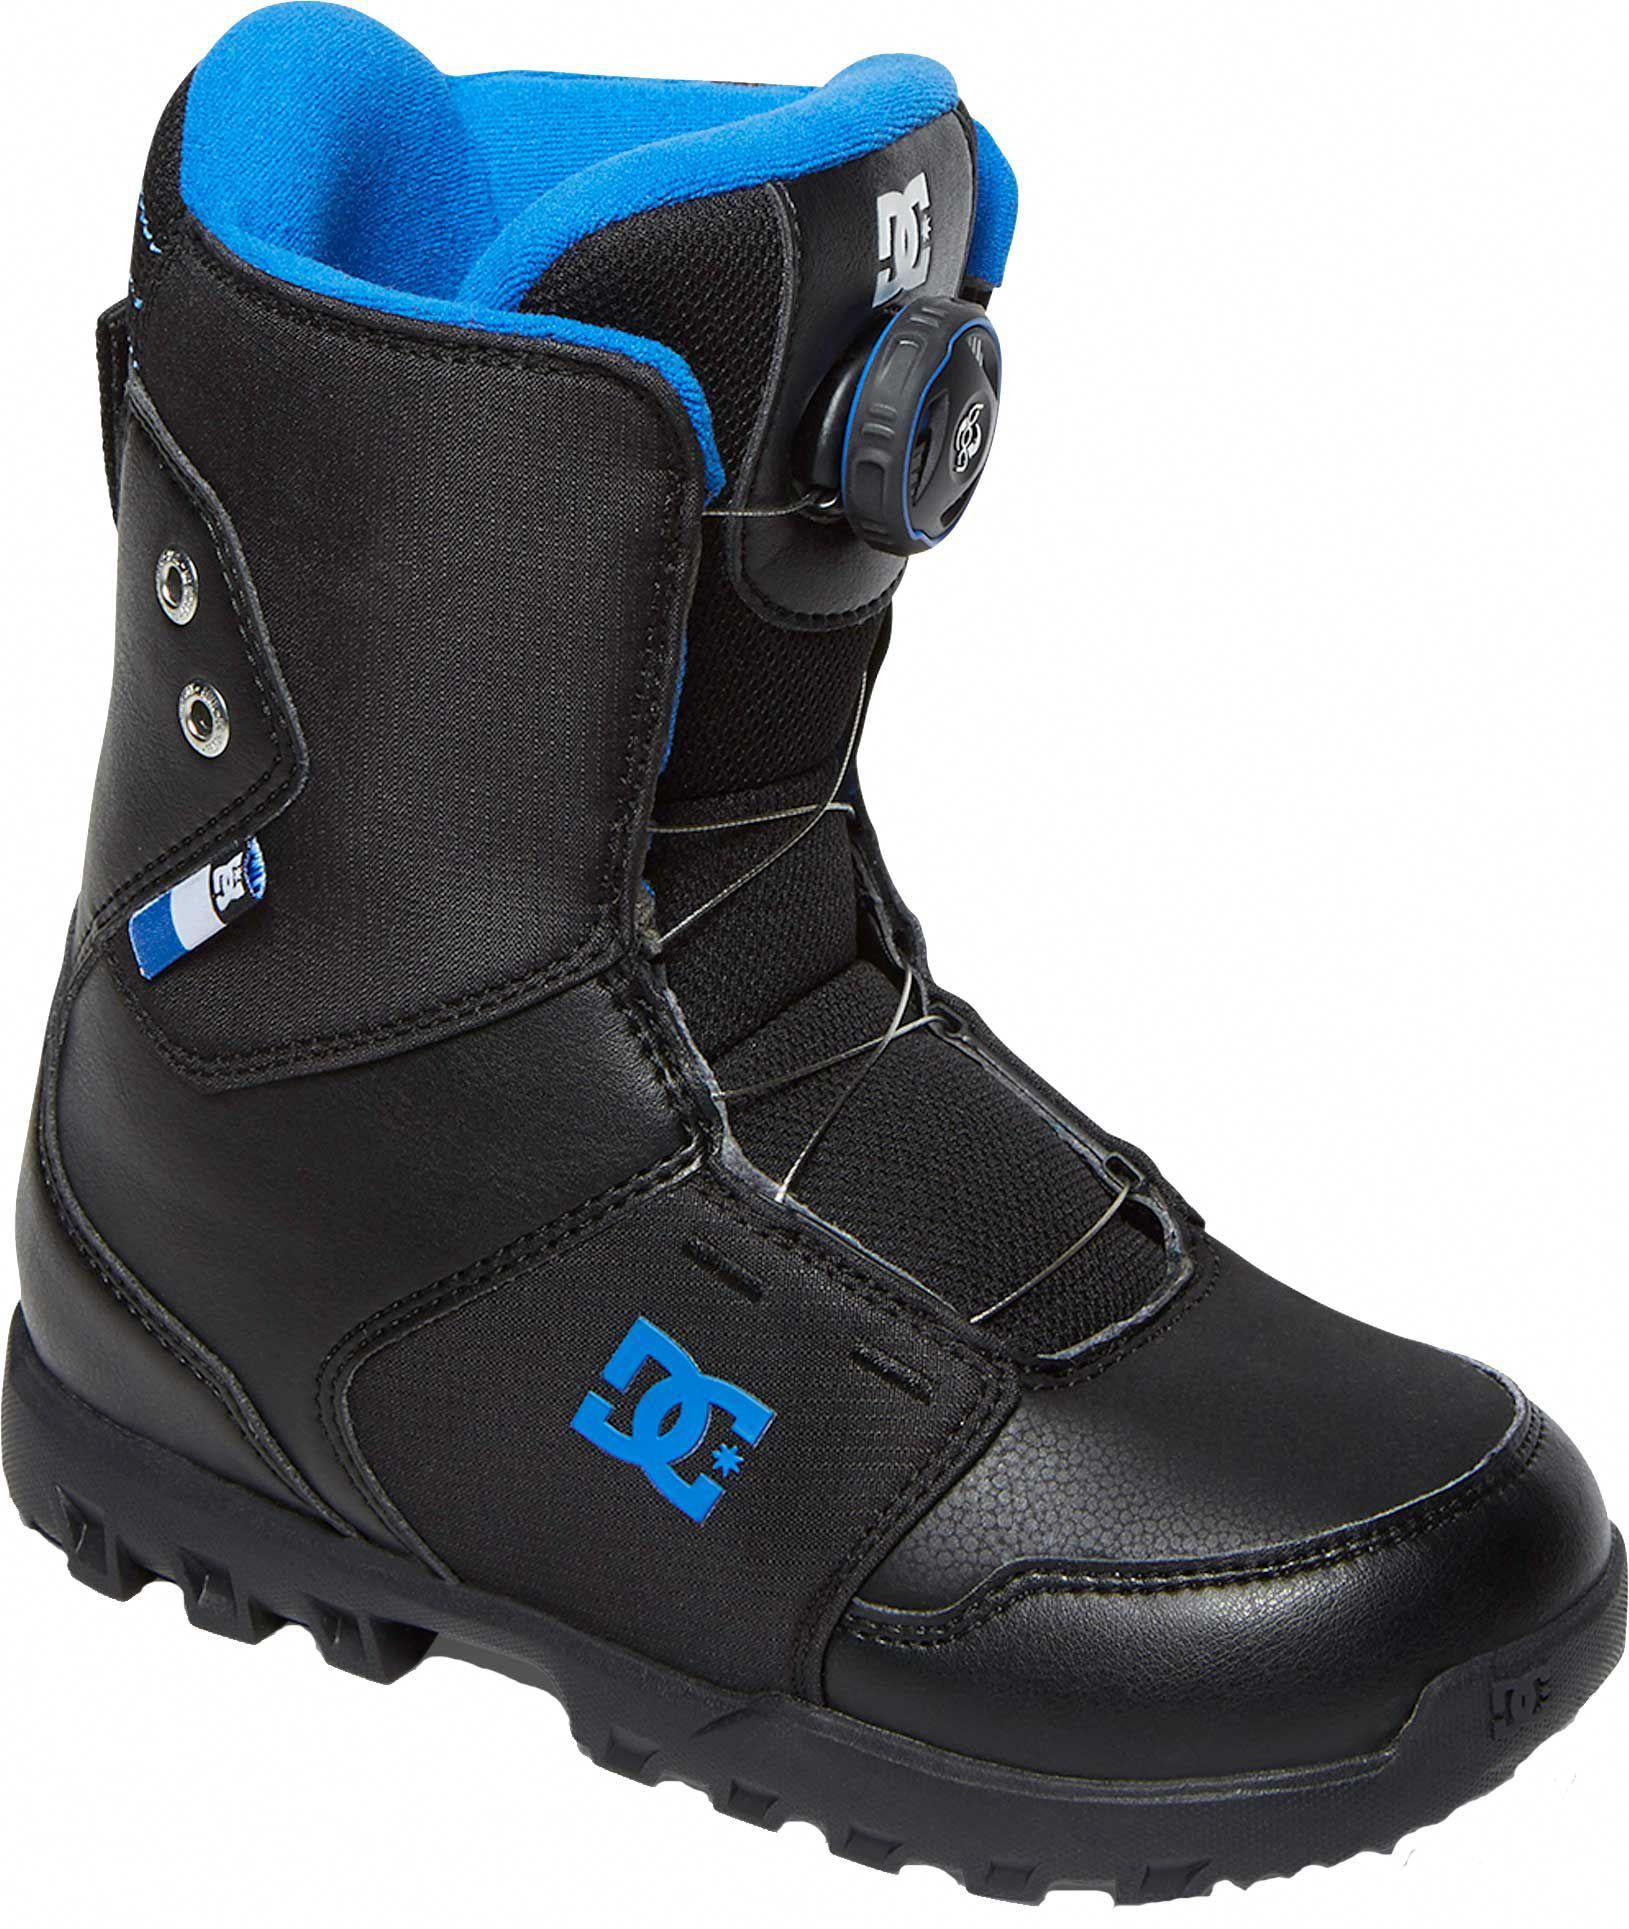 8bcea2e3ff65 DC Shoes Youth Scout 2017-2018 Snowboard Boots  WinterFun